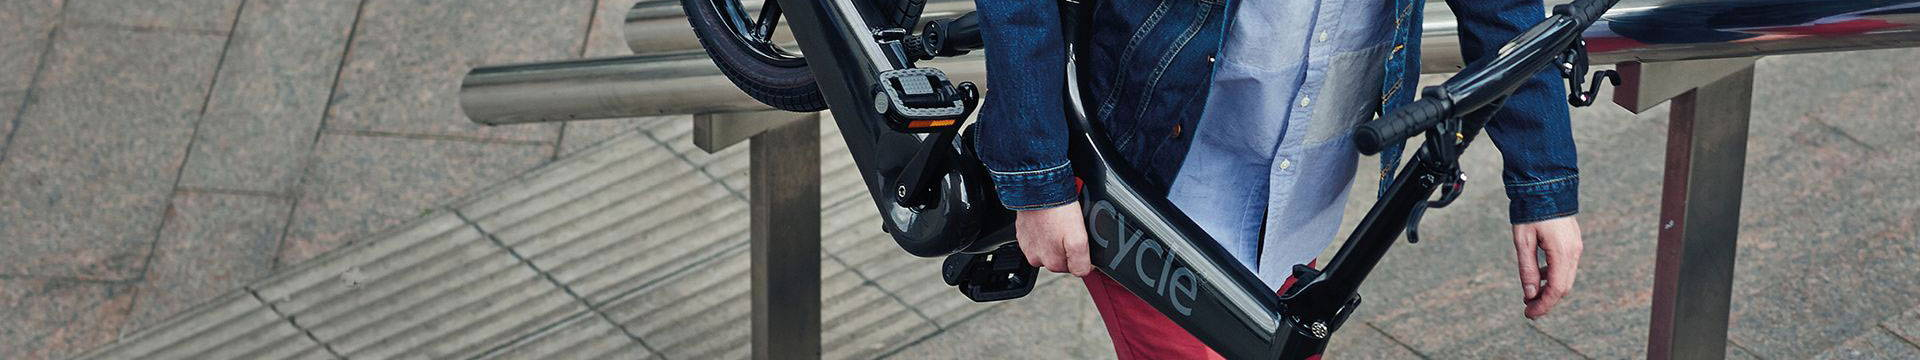 Portable electric folding bikes from GoCycle.